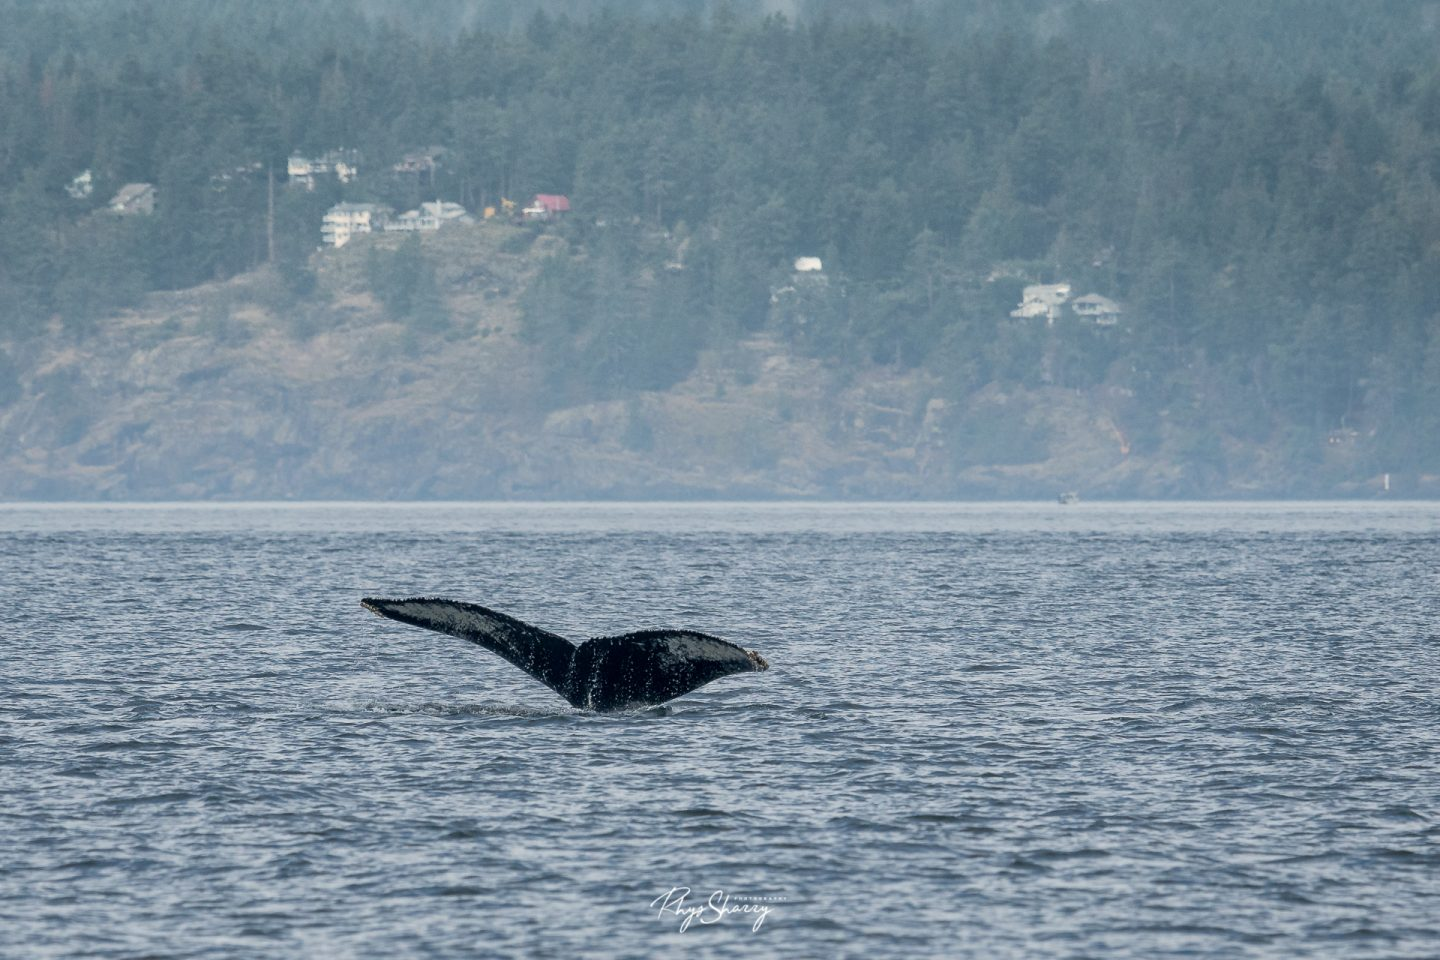 The tail of a humpback whale near Vancouver, BC